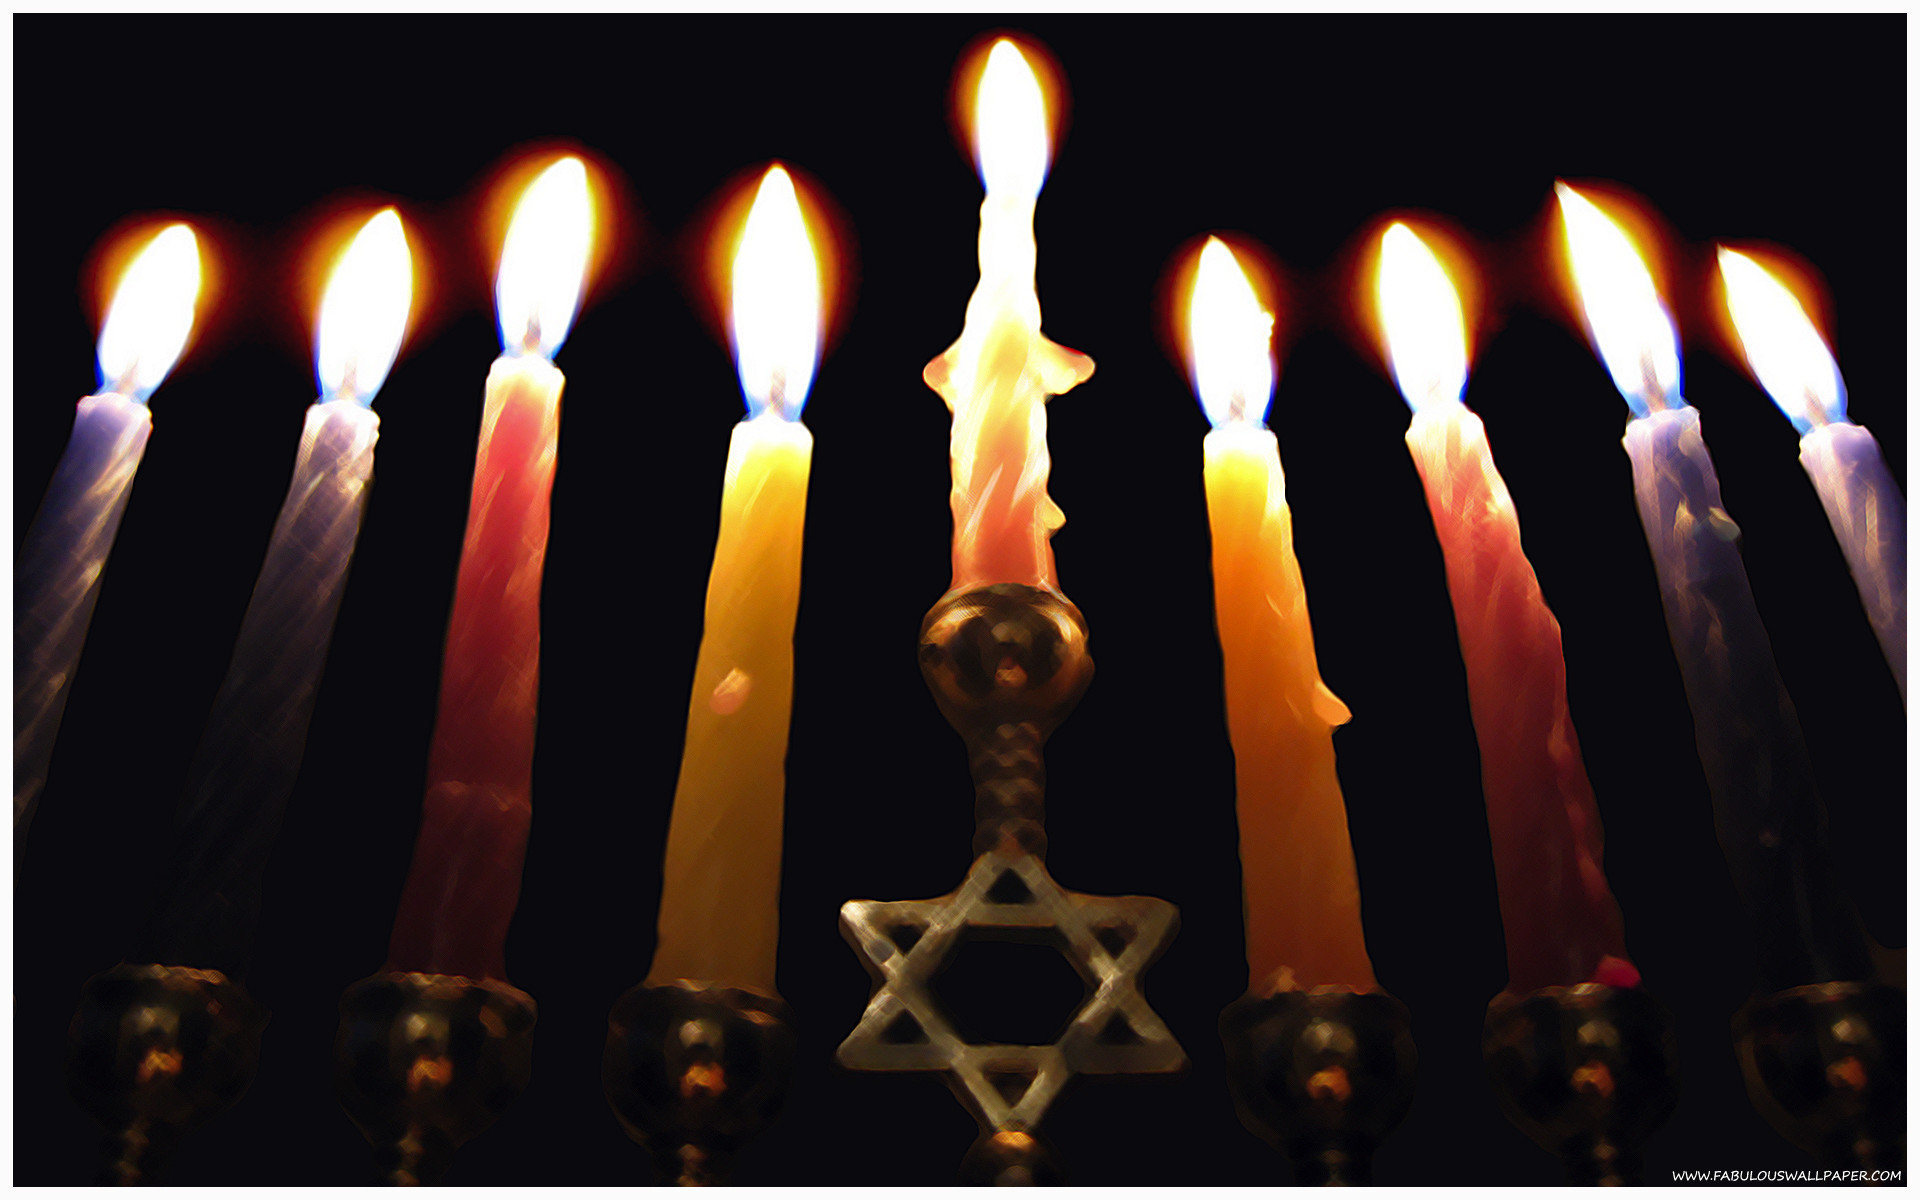 1920x1200 Menorah Wallpaper